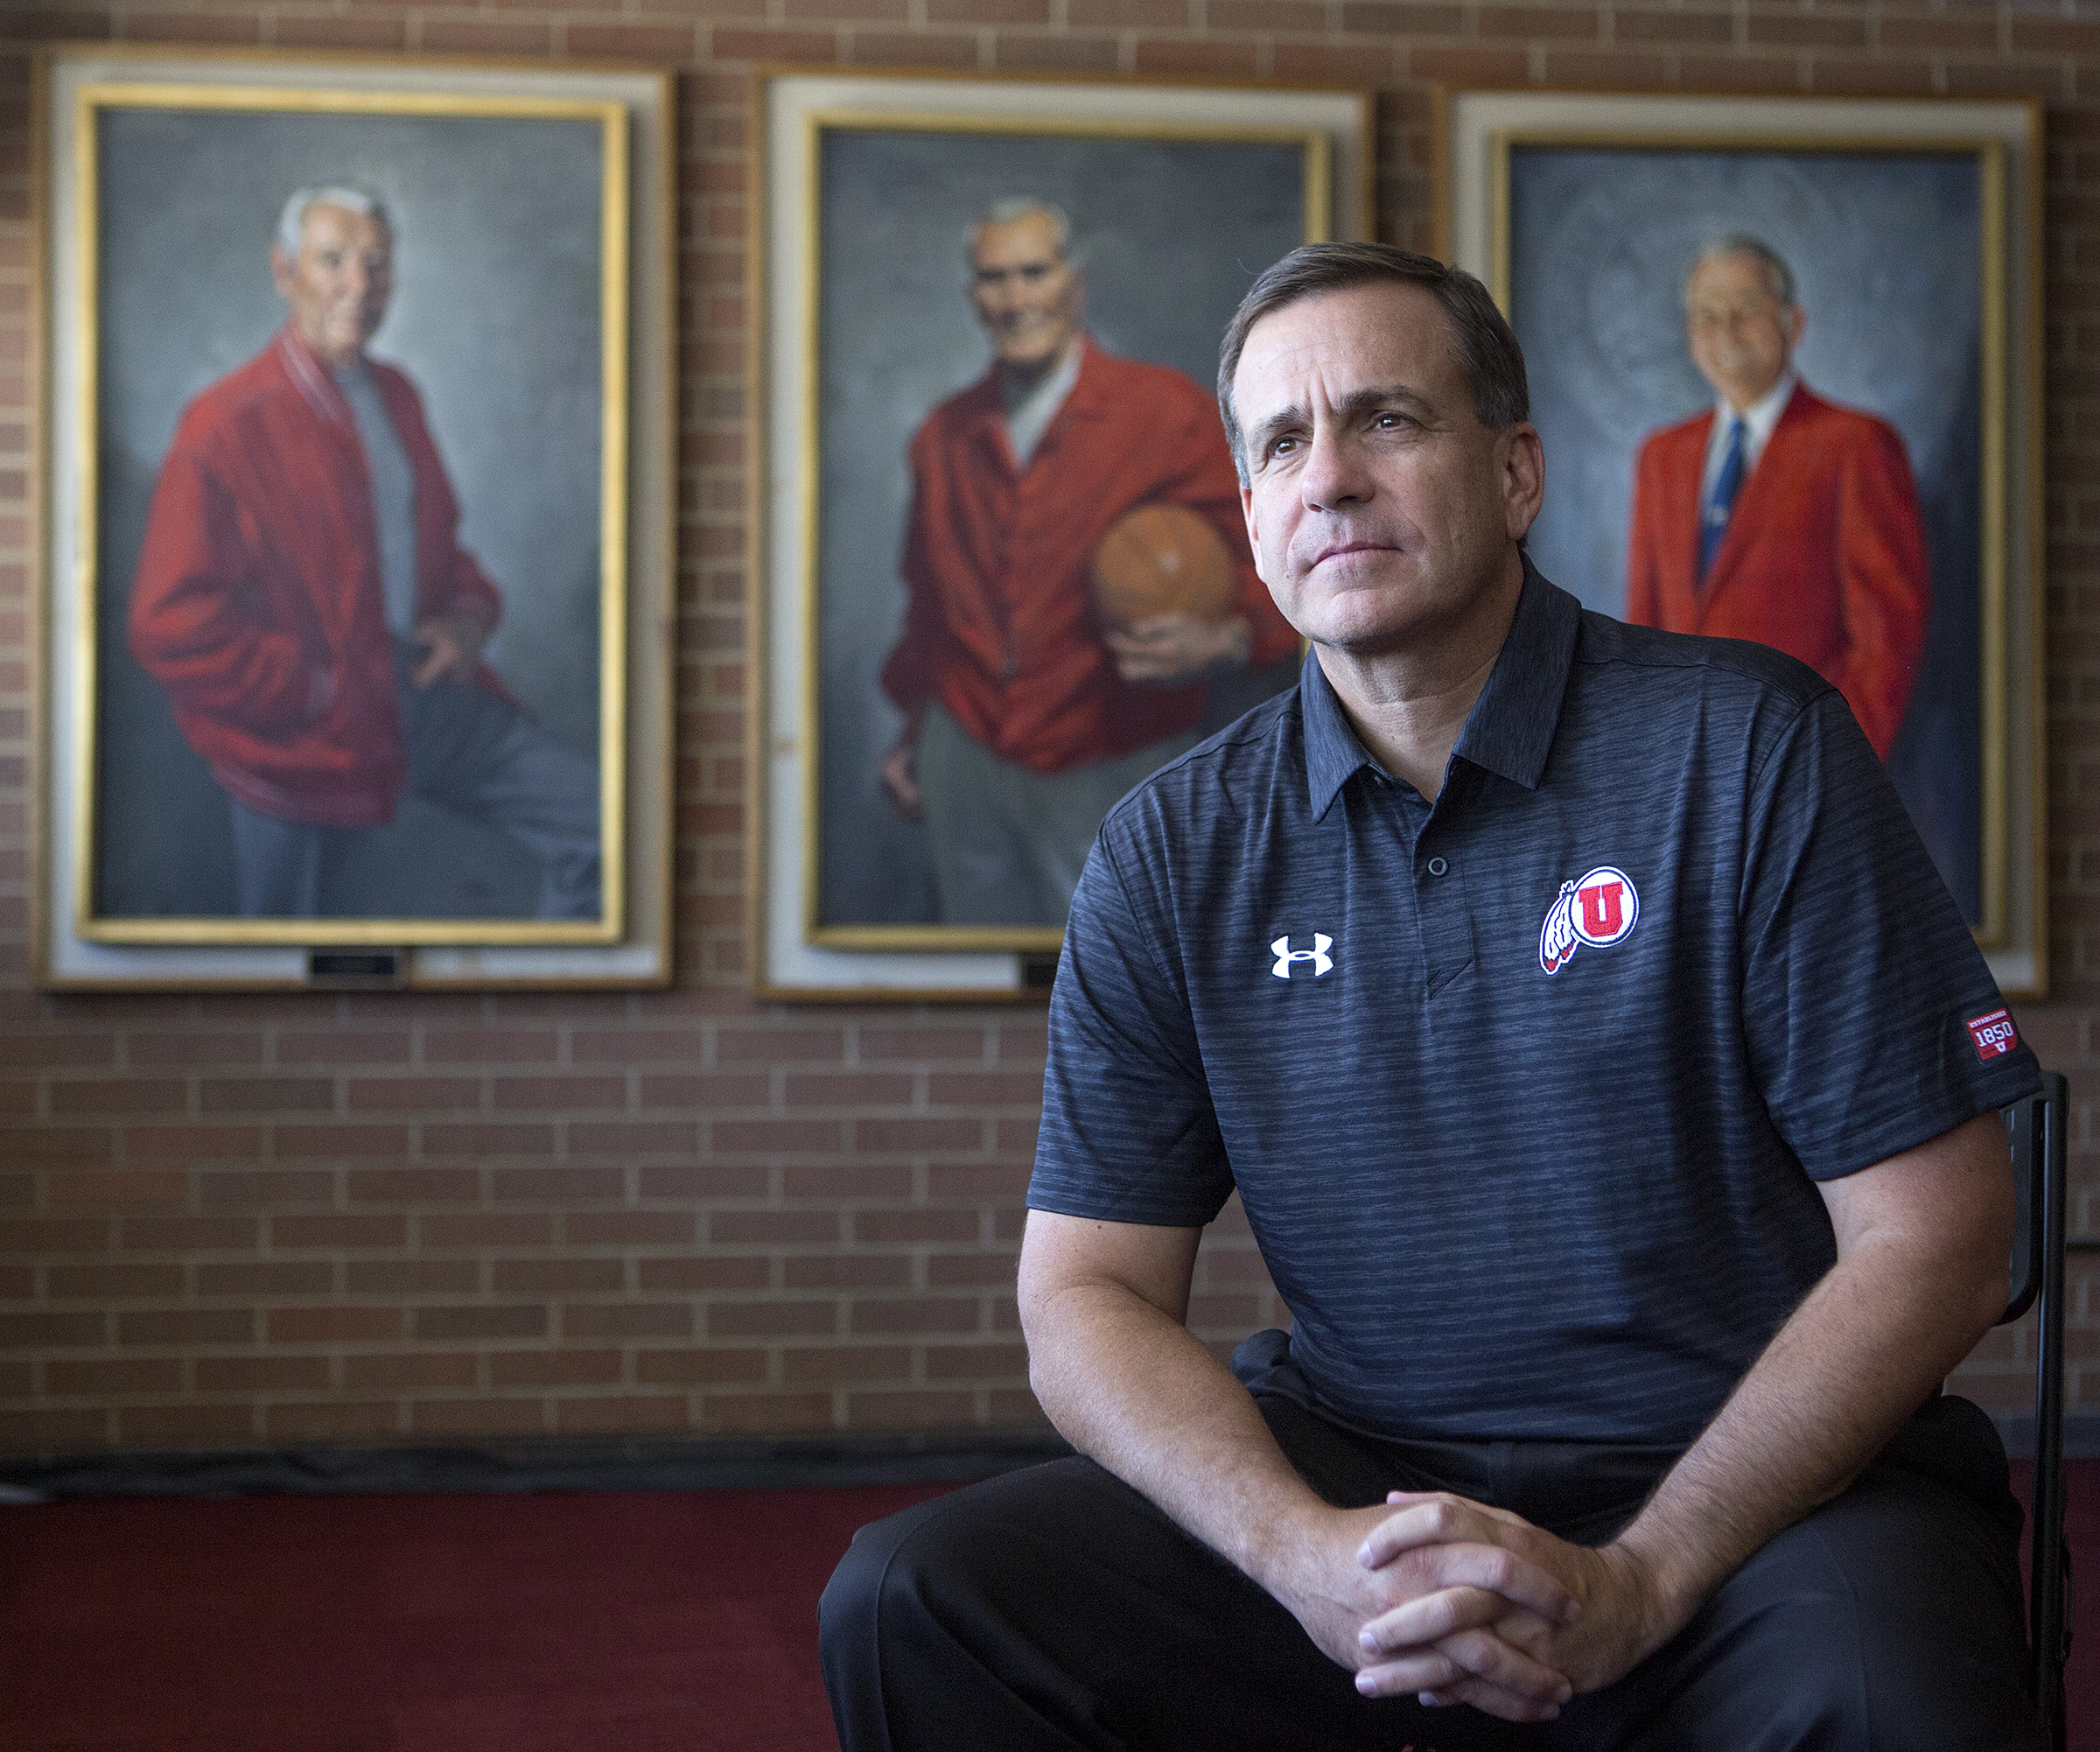 Mark Harlan, the new athletic director at the University of Utah, poses in front of portraits of former athletic director Isaac Armstrong, left, former head basketball coach Vadal Peterson and former athletic director James Jack at the Huntsman Center in Salt Lake City on Friday, June 29, 2018.